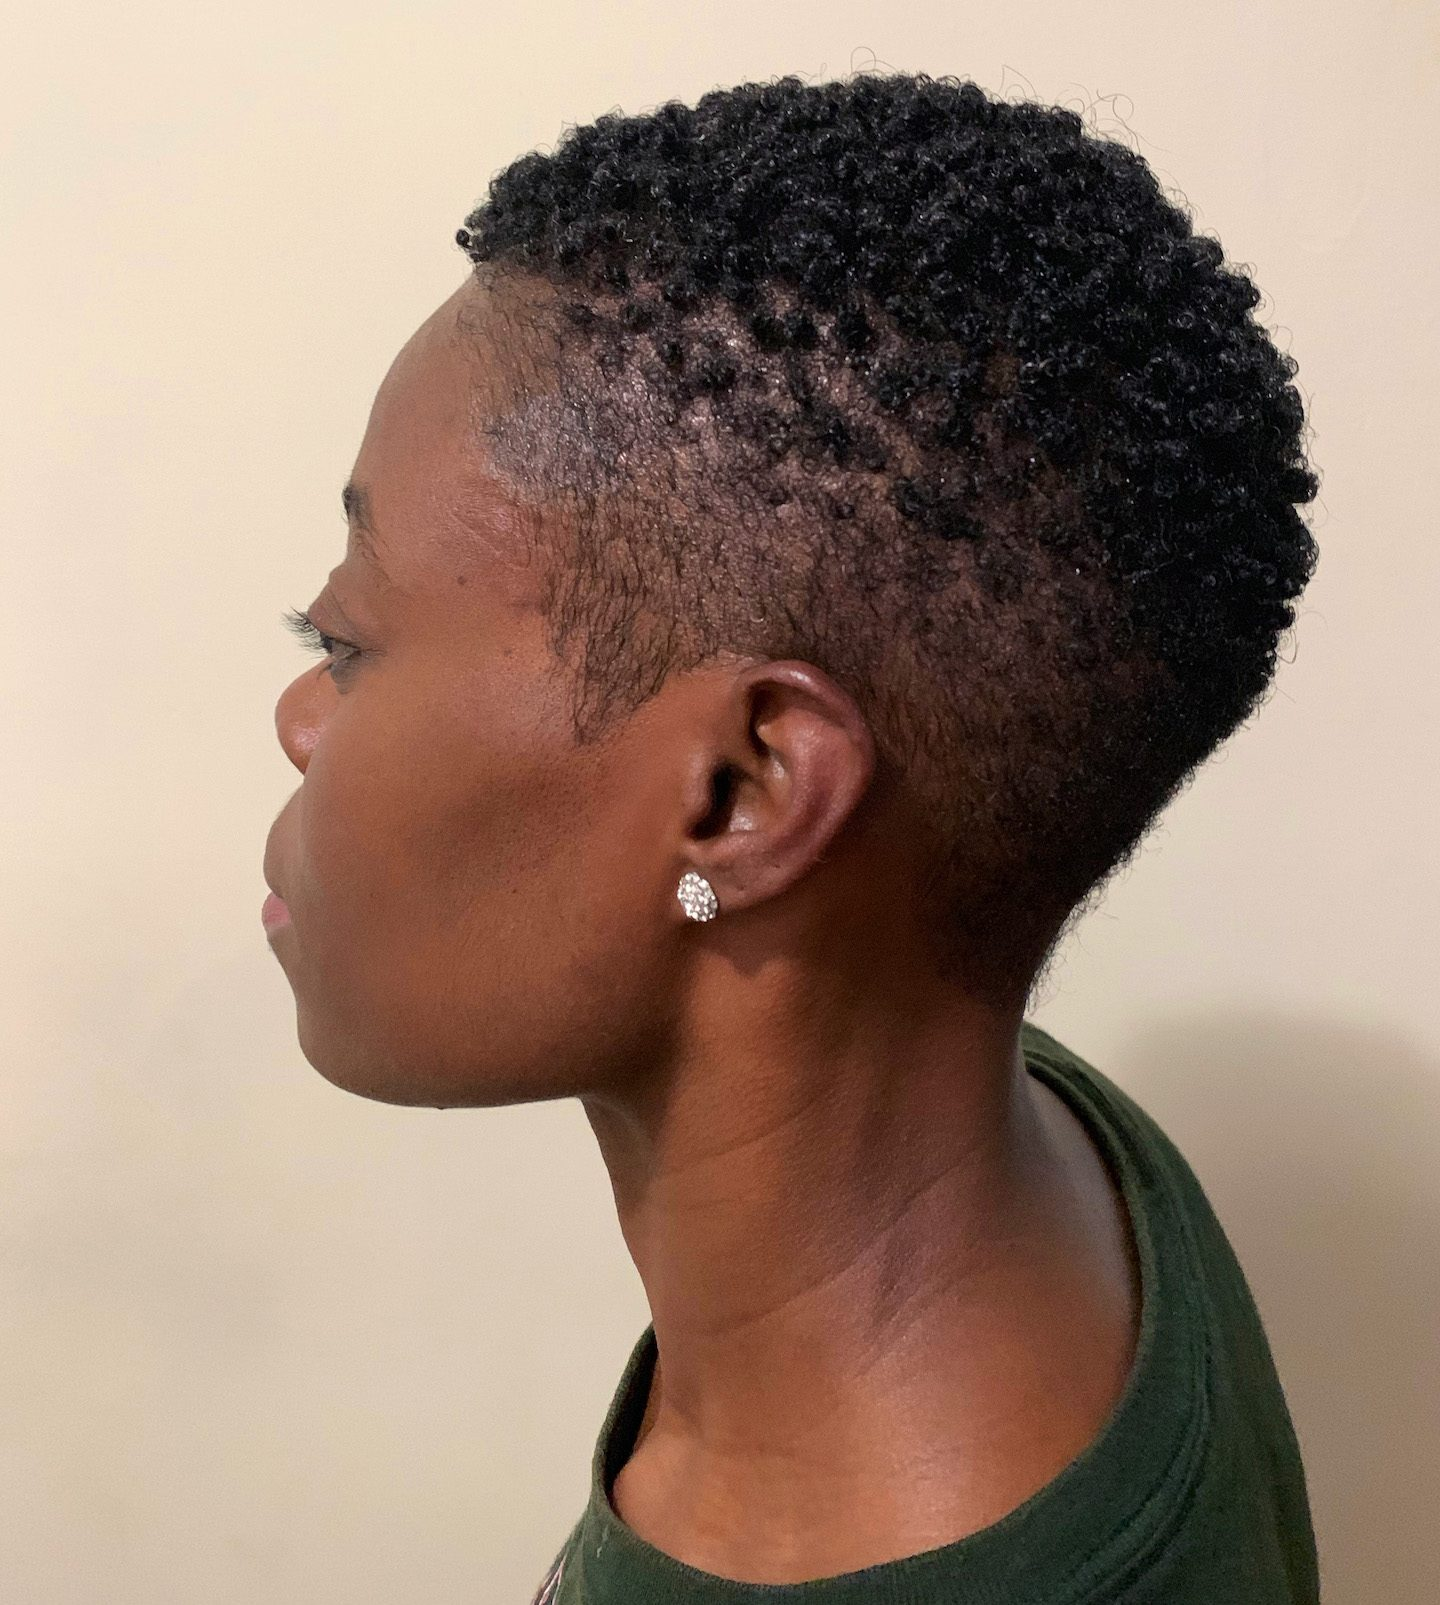 4C Tapered Cut Styled With Mielle Organics Pomegranate & Honey Collection